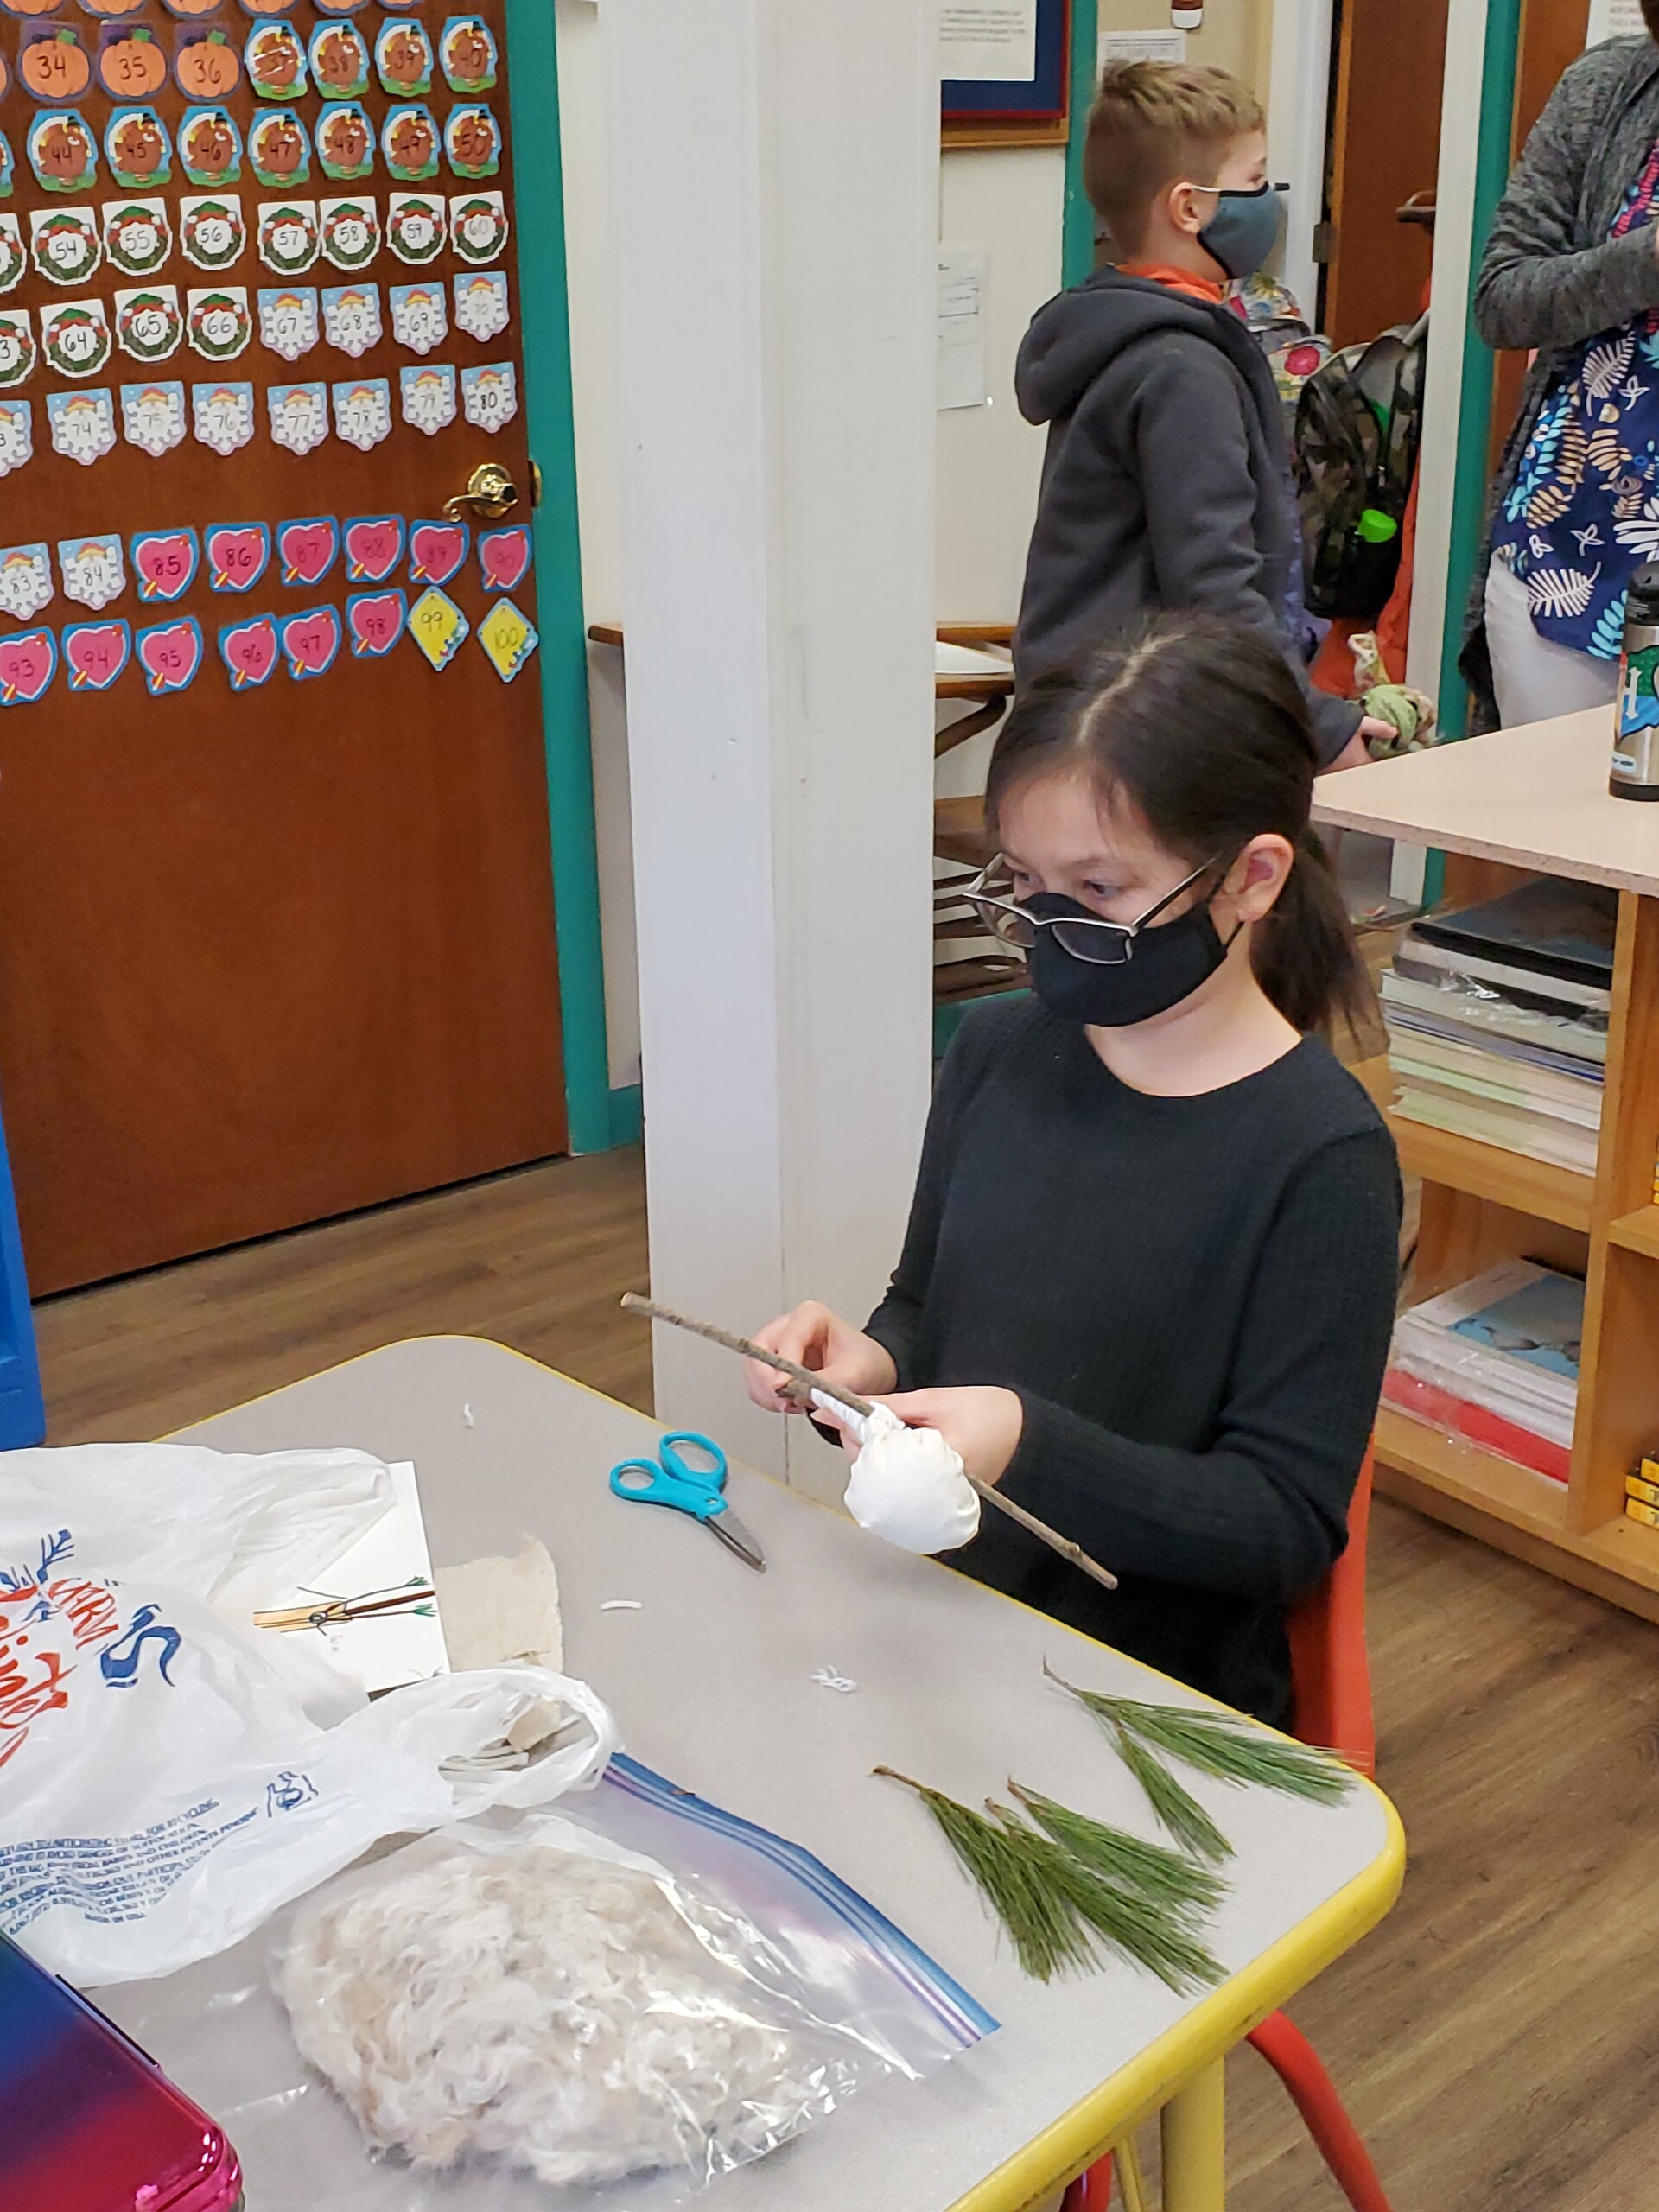 Student creating a scarecrow using sticks and branches